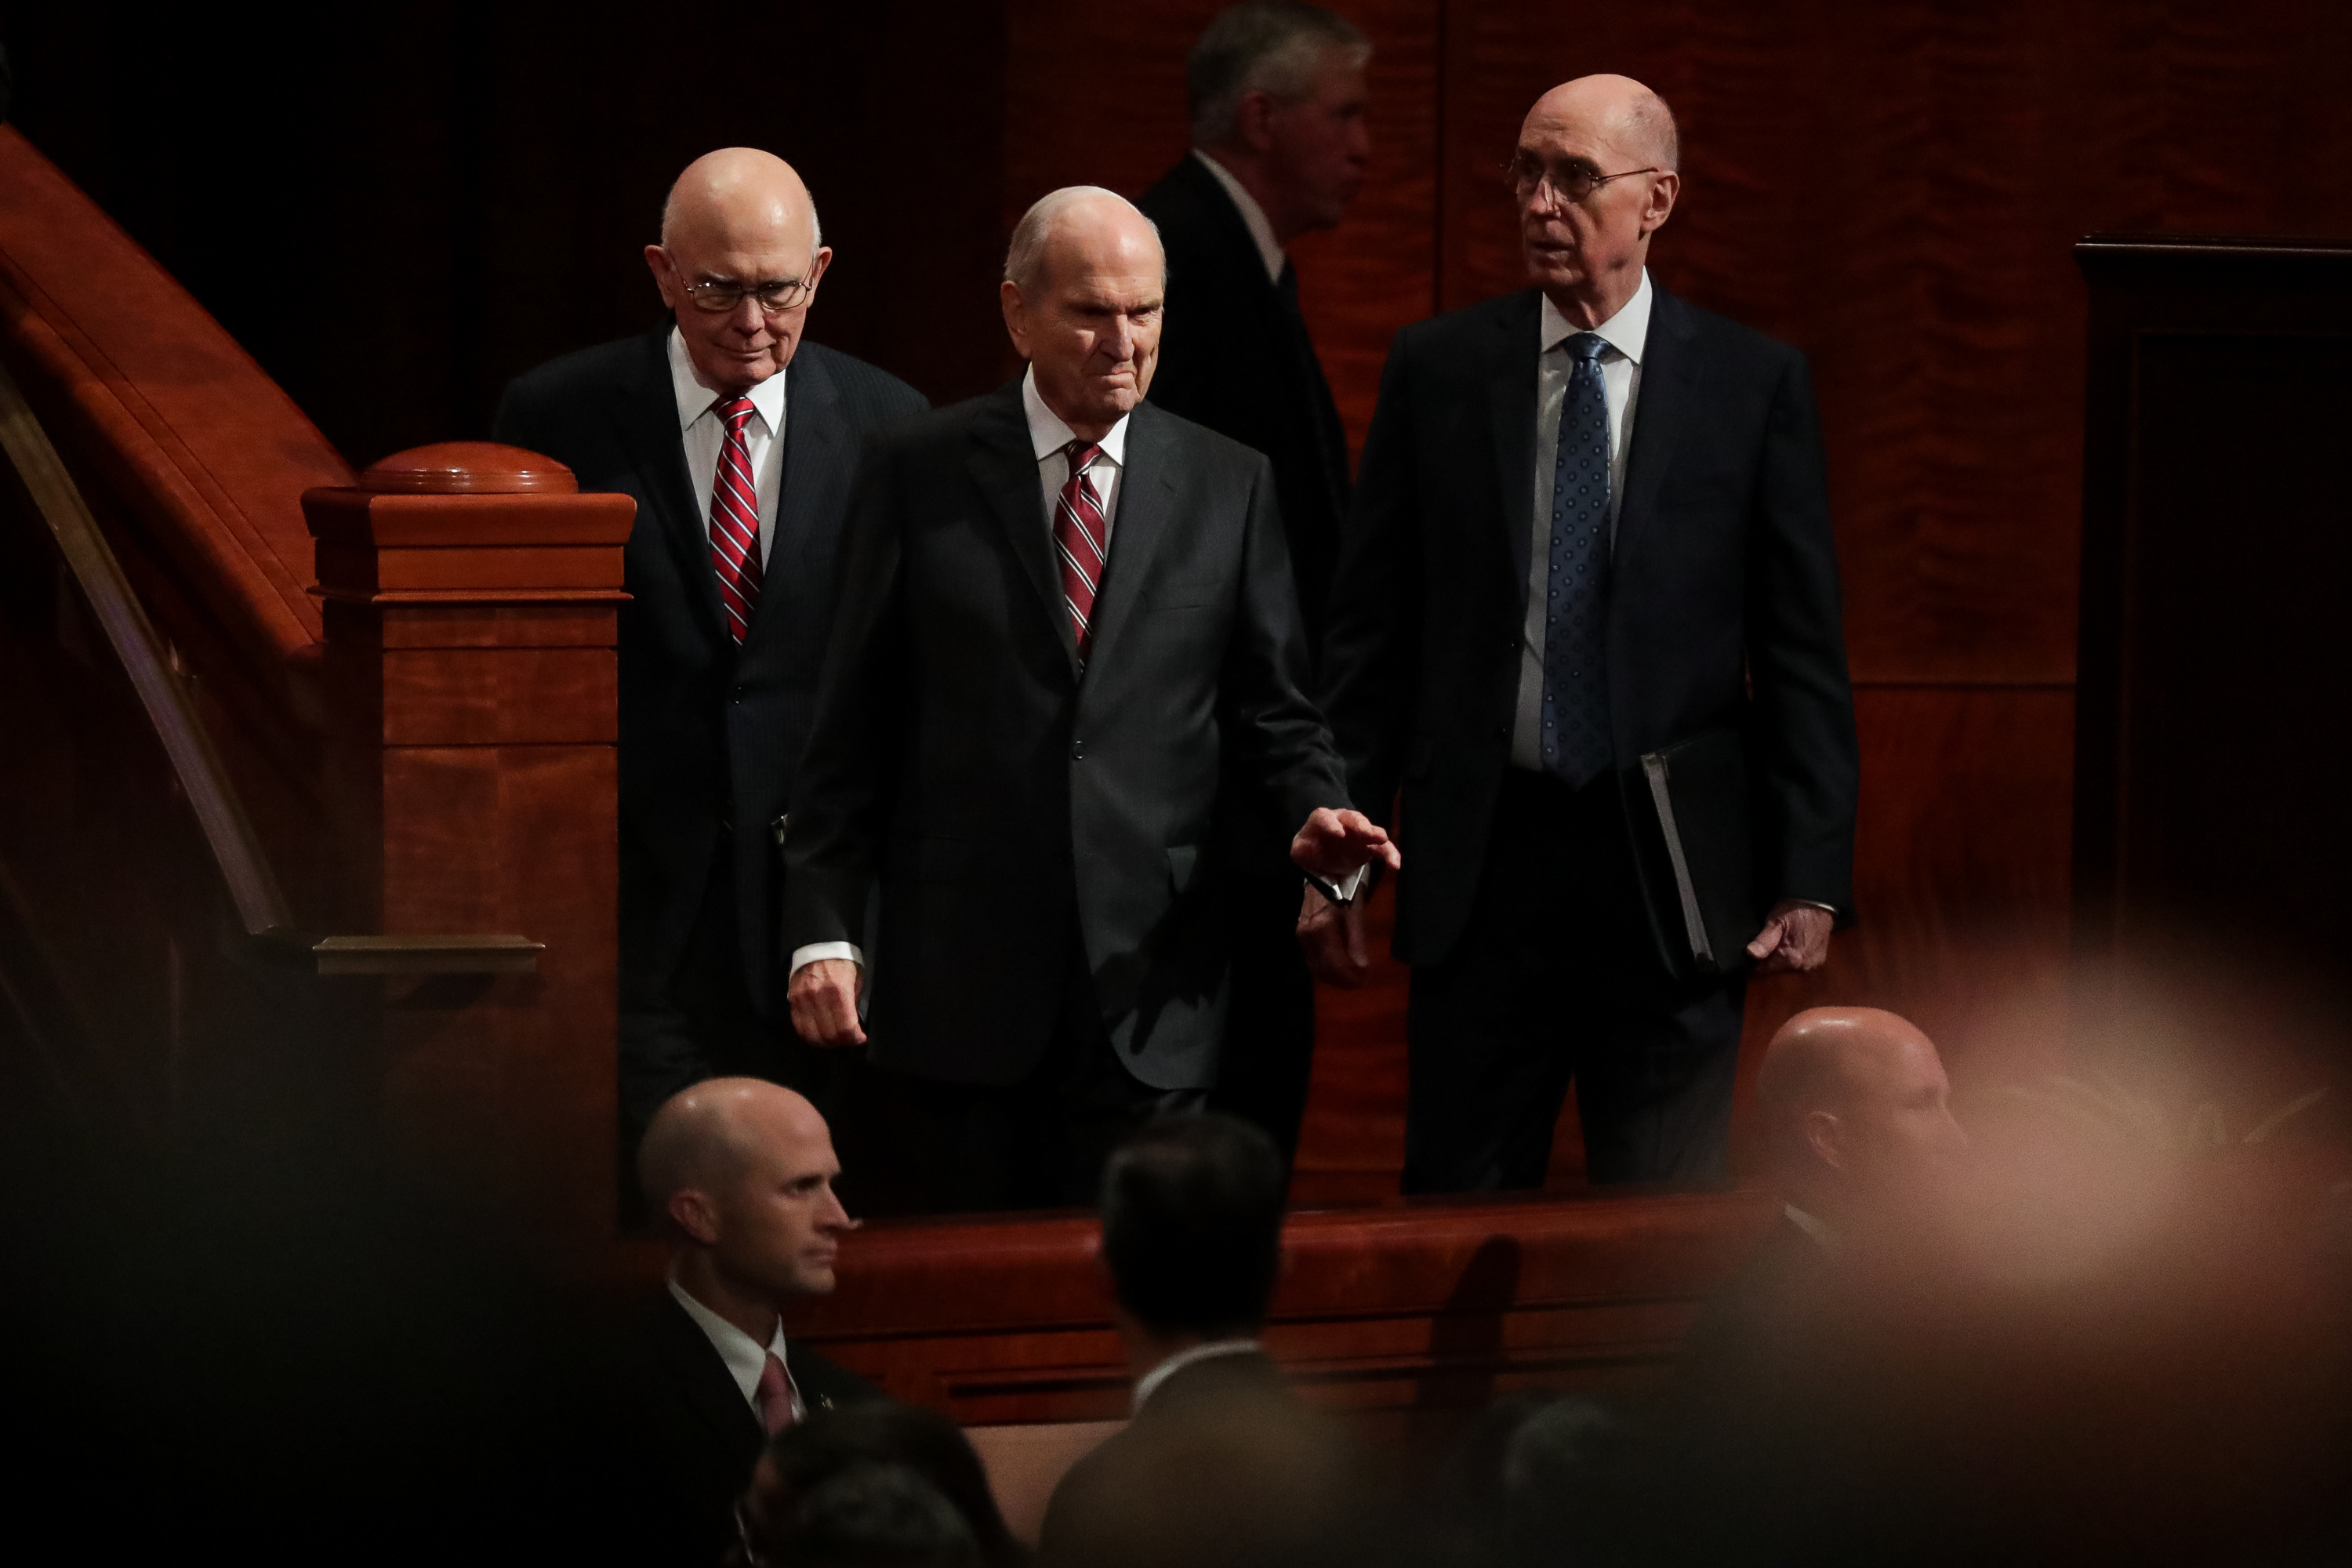 President Russell M. Nelson, center, President Dallin H. Oaks, first counselor, left, and President Henry B. Eyring, second counselor, right, arrive for the Saturday afternoon session of the 188th Semiannual General Conference of The Church of Jesus Christ of Latter-day Saints in the Conference Center in Salt Lake City on Saturday, Oct. 6, 2018.